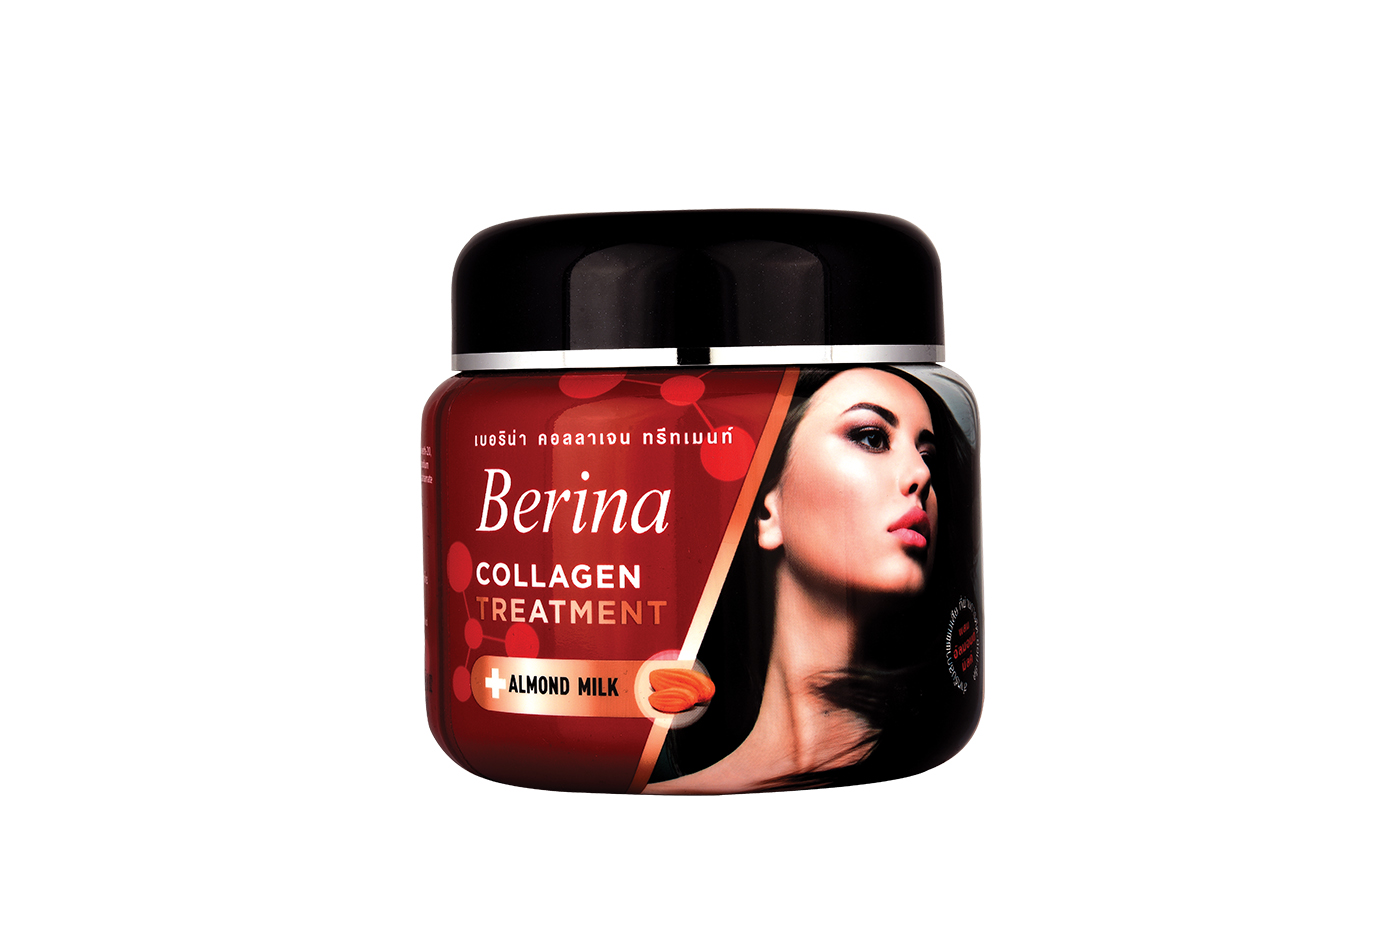 Berina offers collagen treatment for strong hair